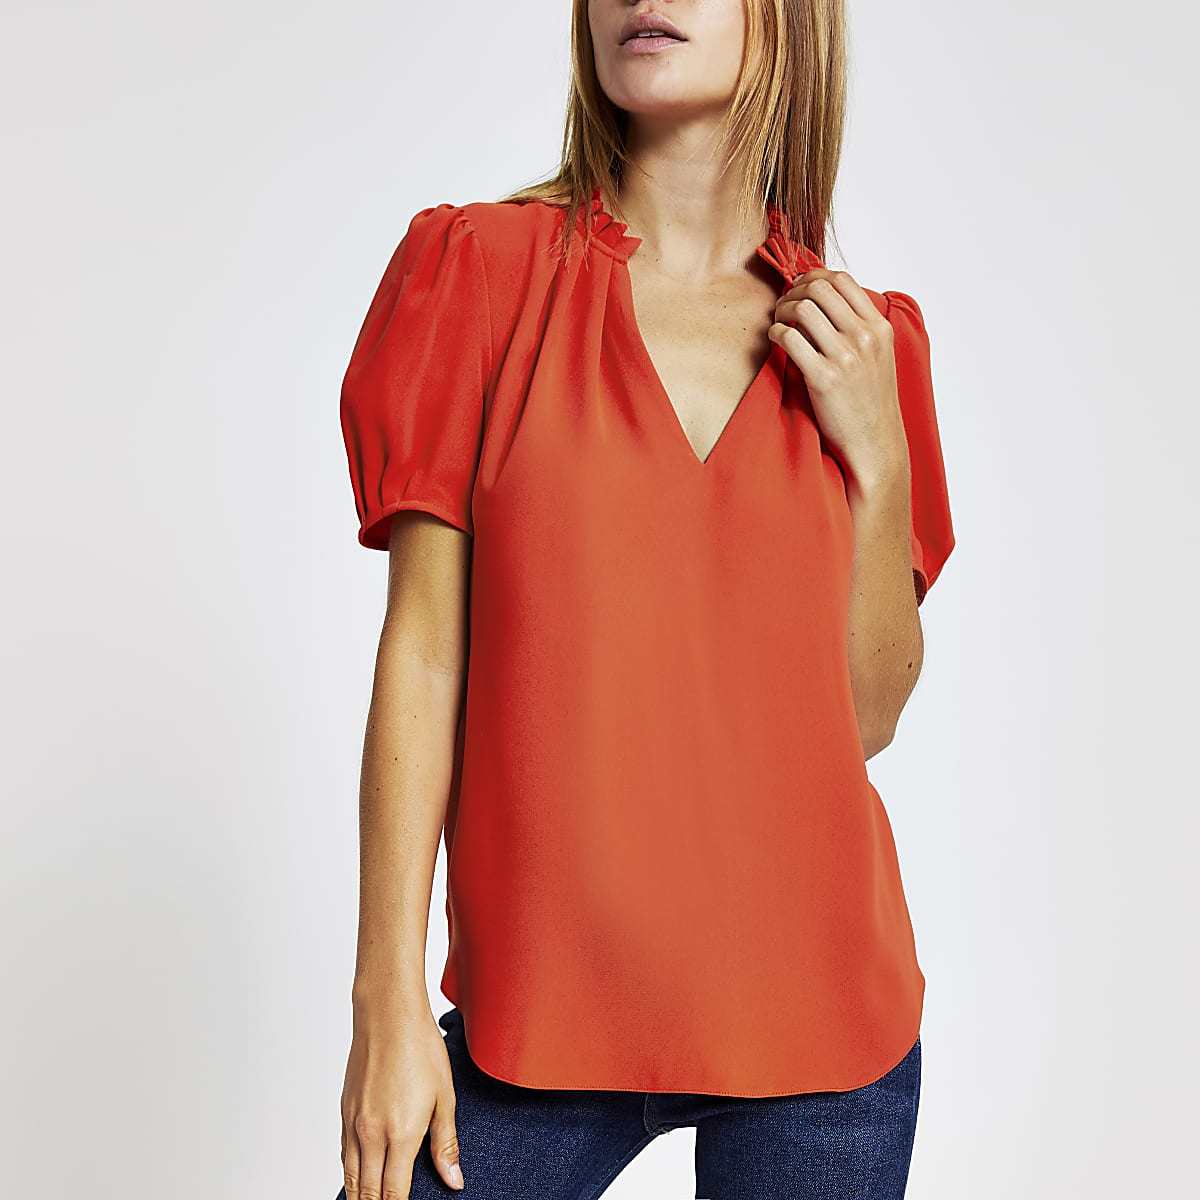 Red V neck shell top